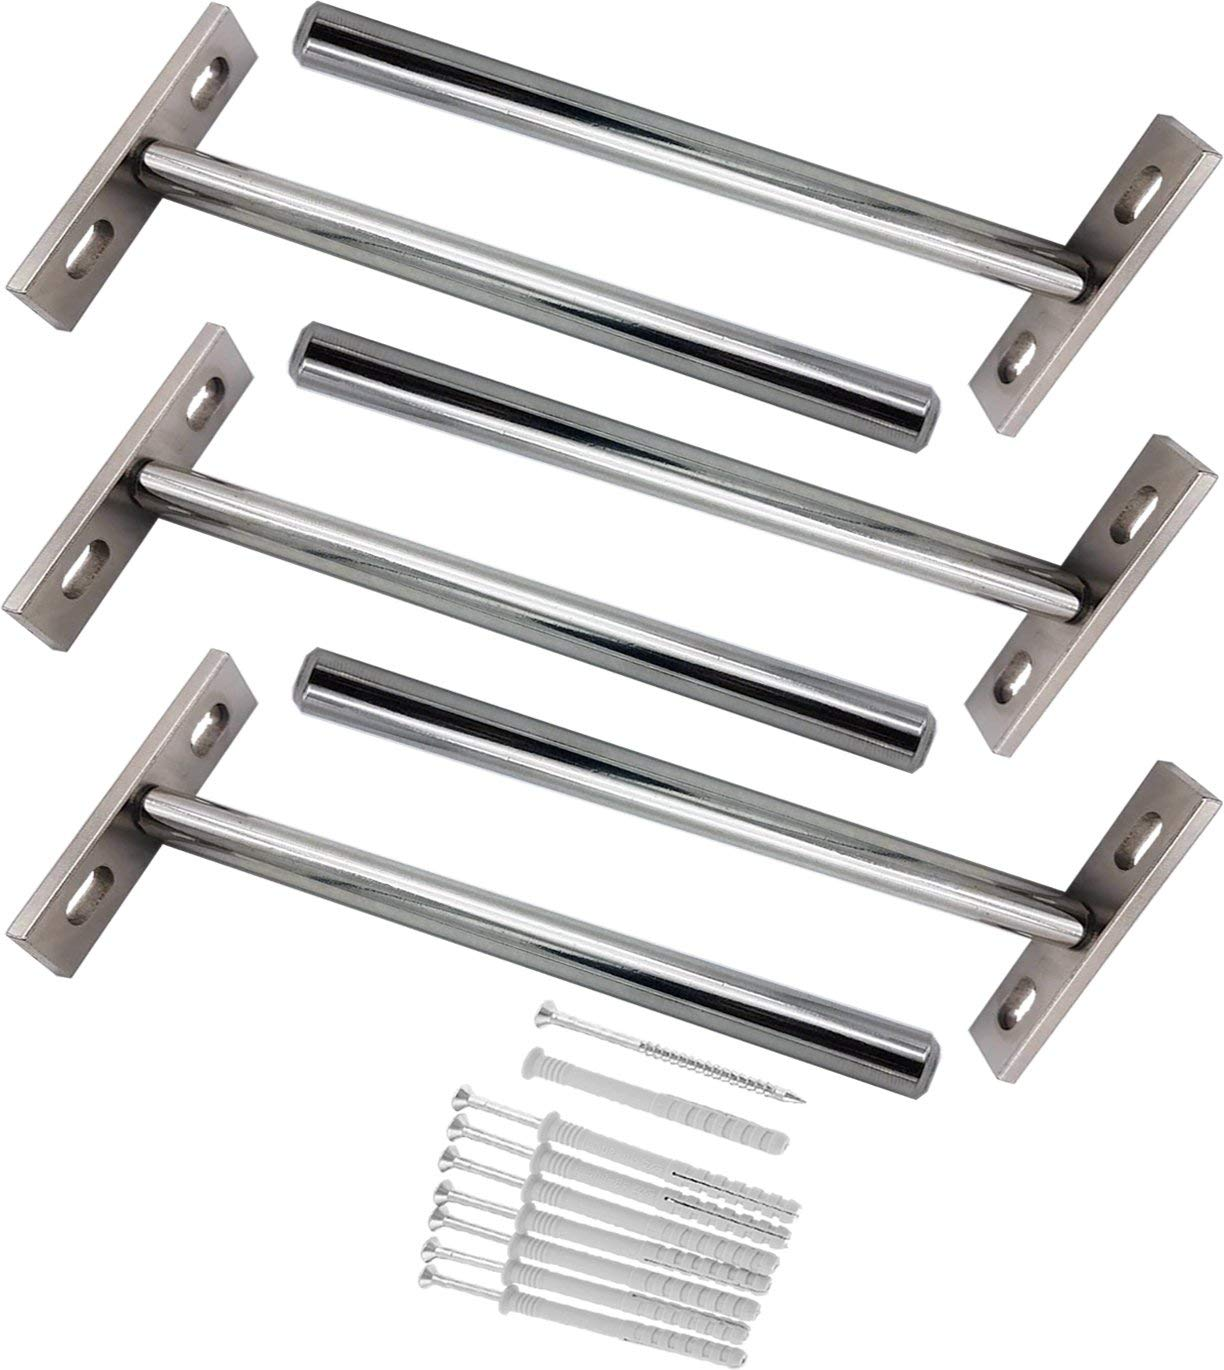 """5"""" Floating Shelf Brackets x 6 with Screws and Wall Plugs. Nickel Plated Solid Steel, Flush Fit Blind Invisible Hanging Fully Concealable Hidden Shelves Supports. Solid and Strong. Six Piece Set"""